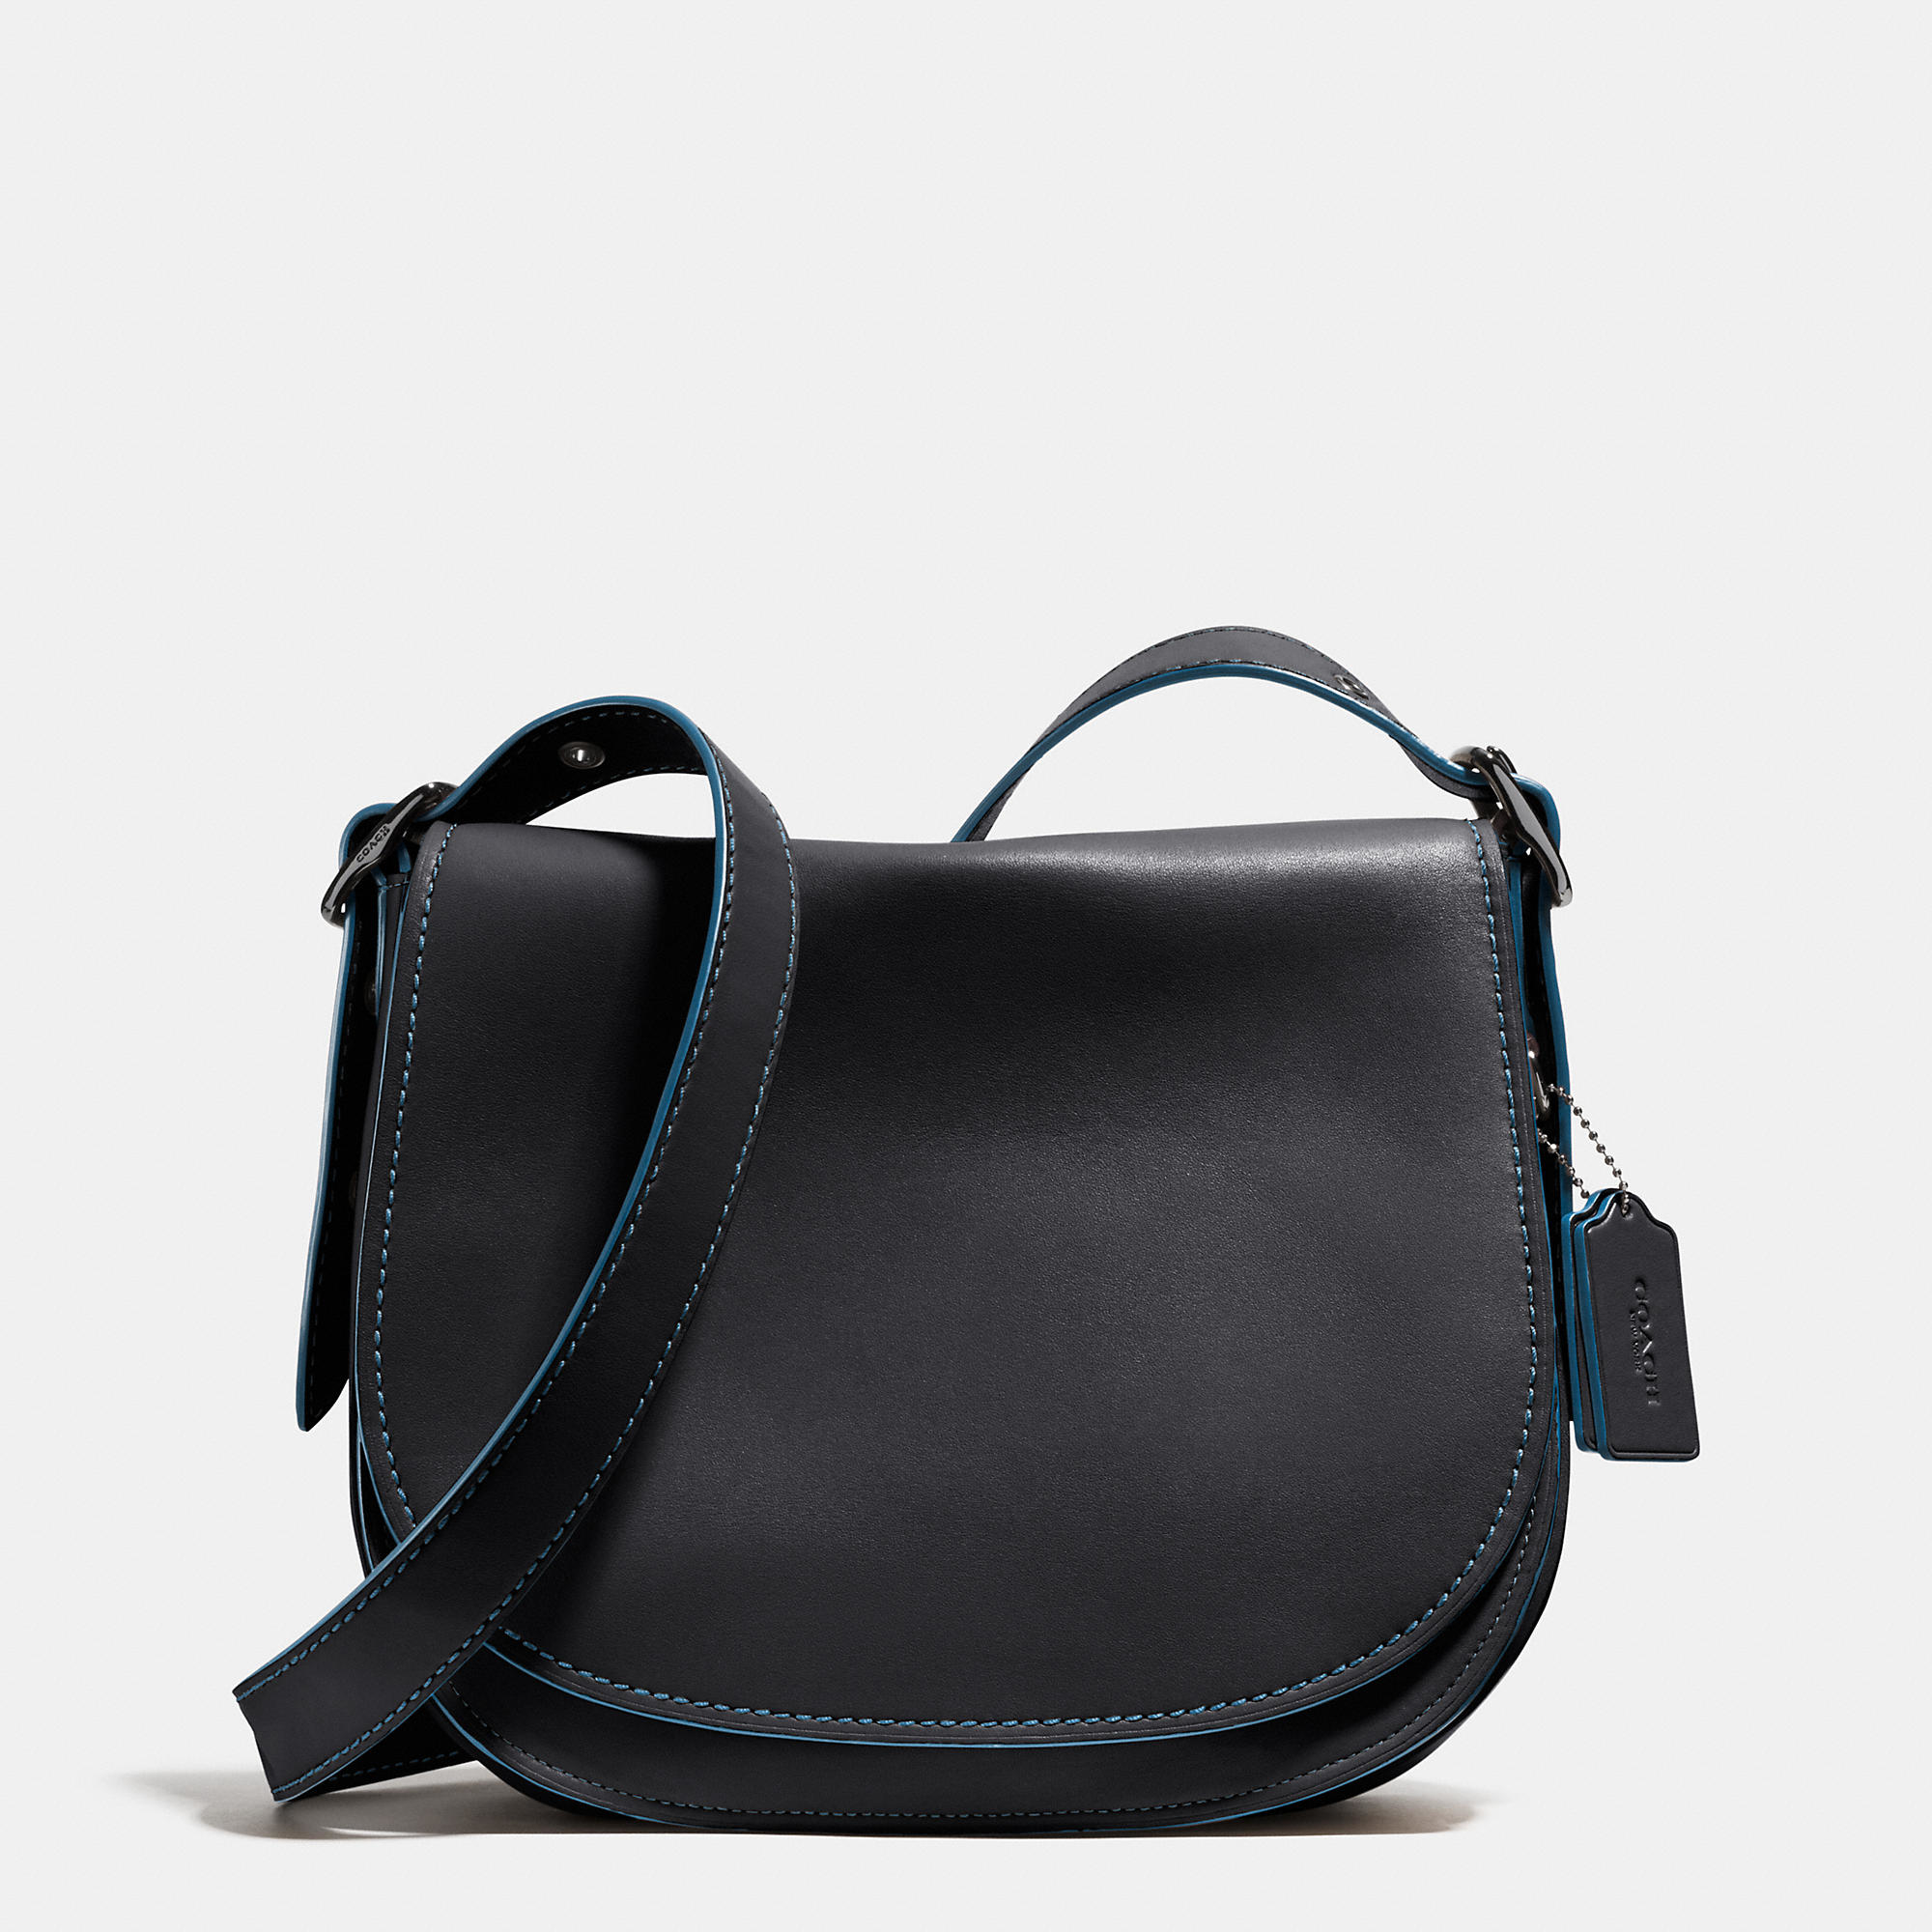 Coach Saddle Bag In Glovetanned Leather in Gray | Lyst Saddle Bag